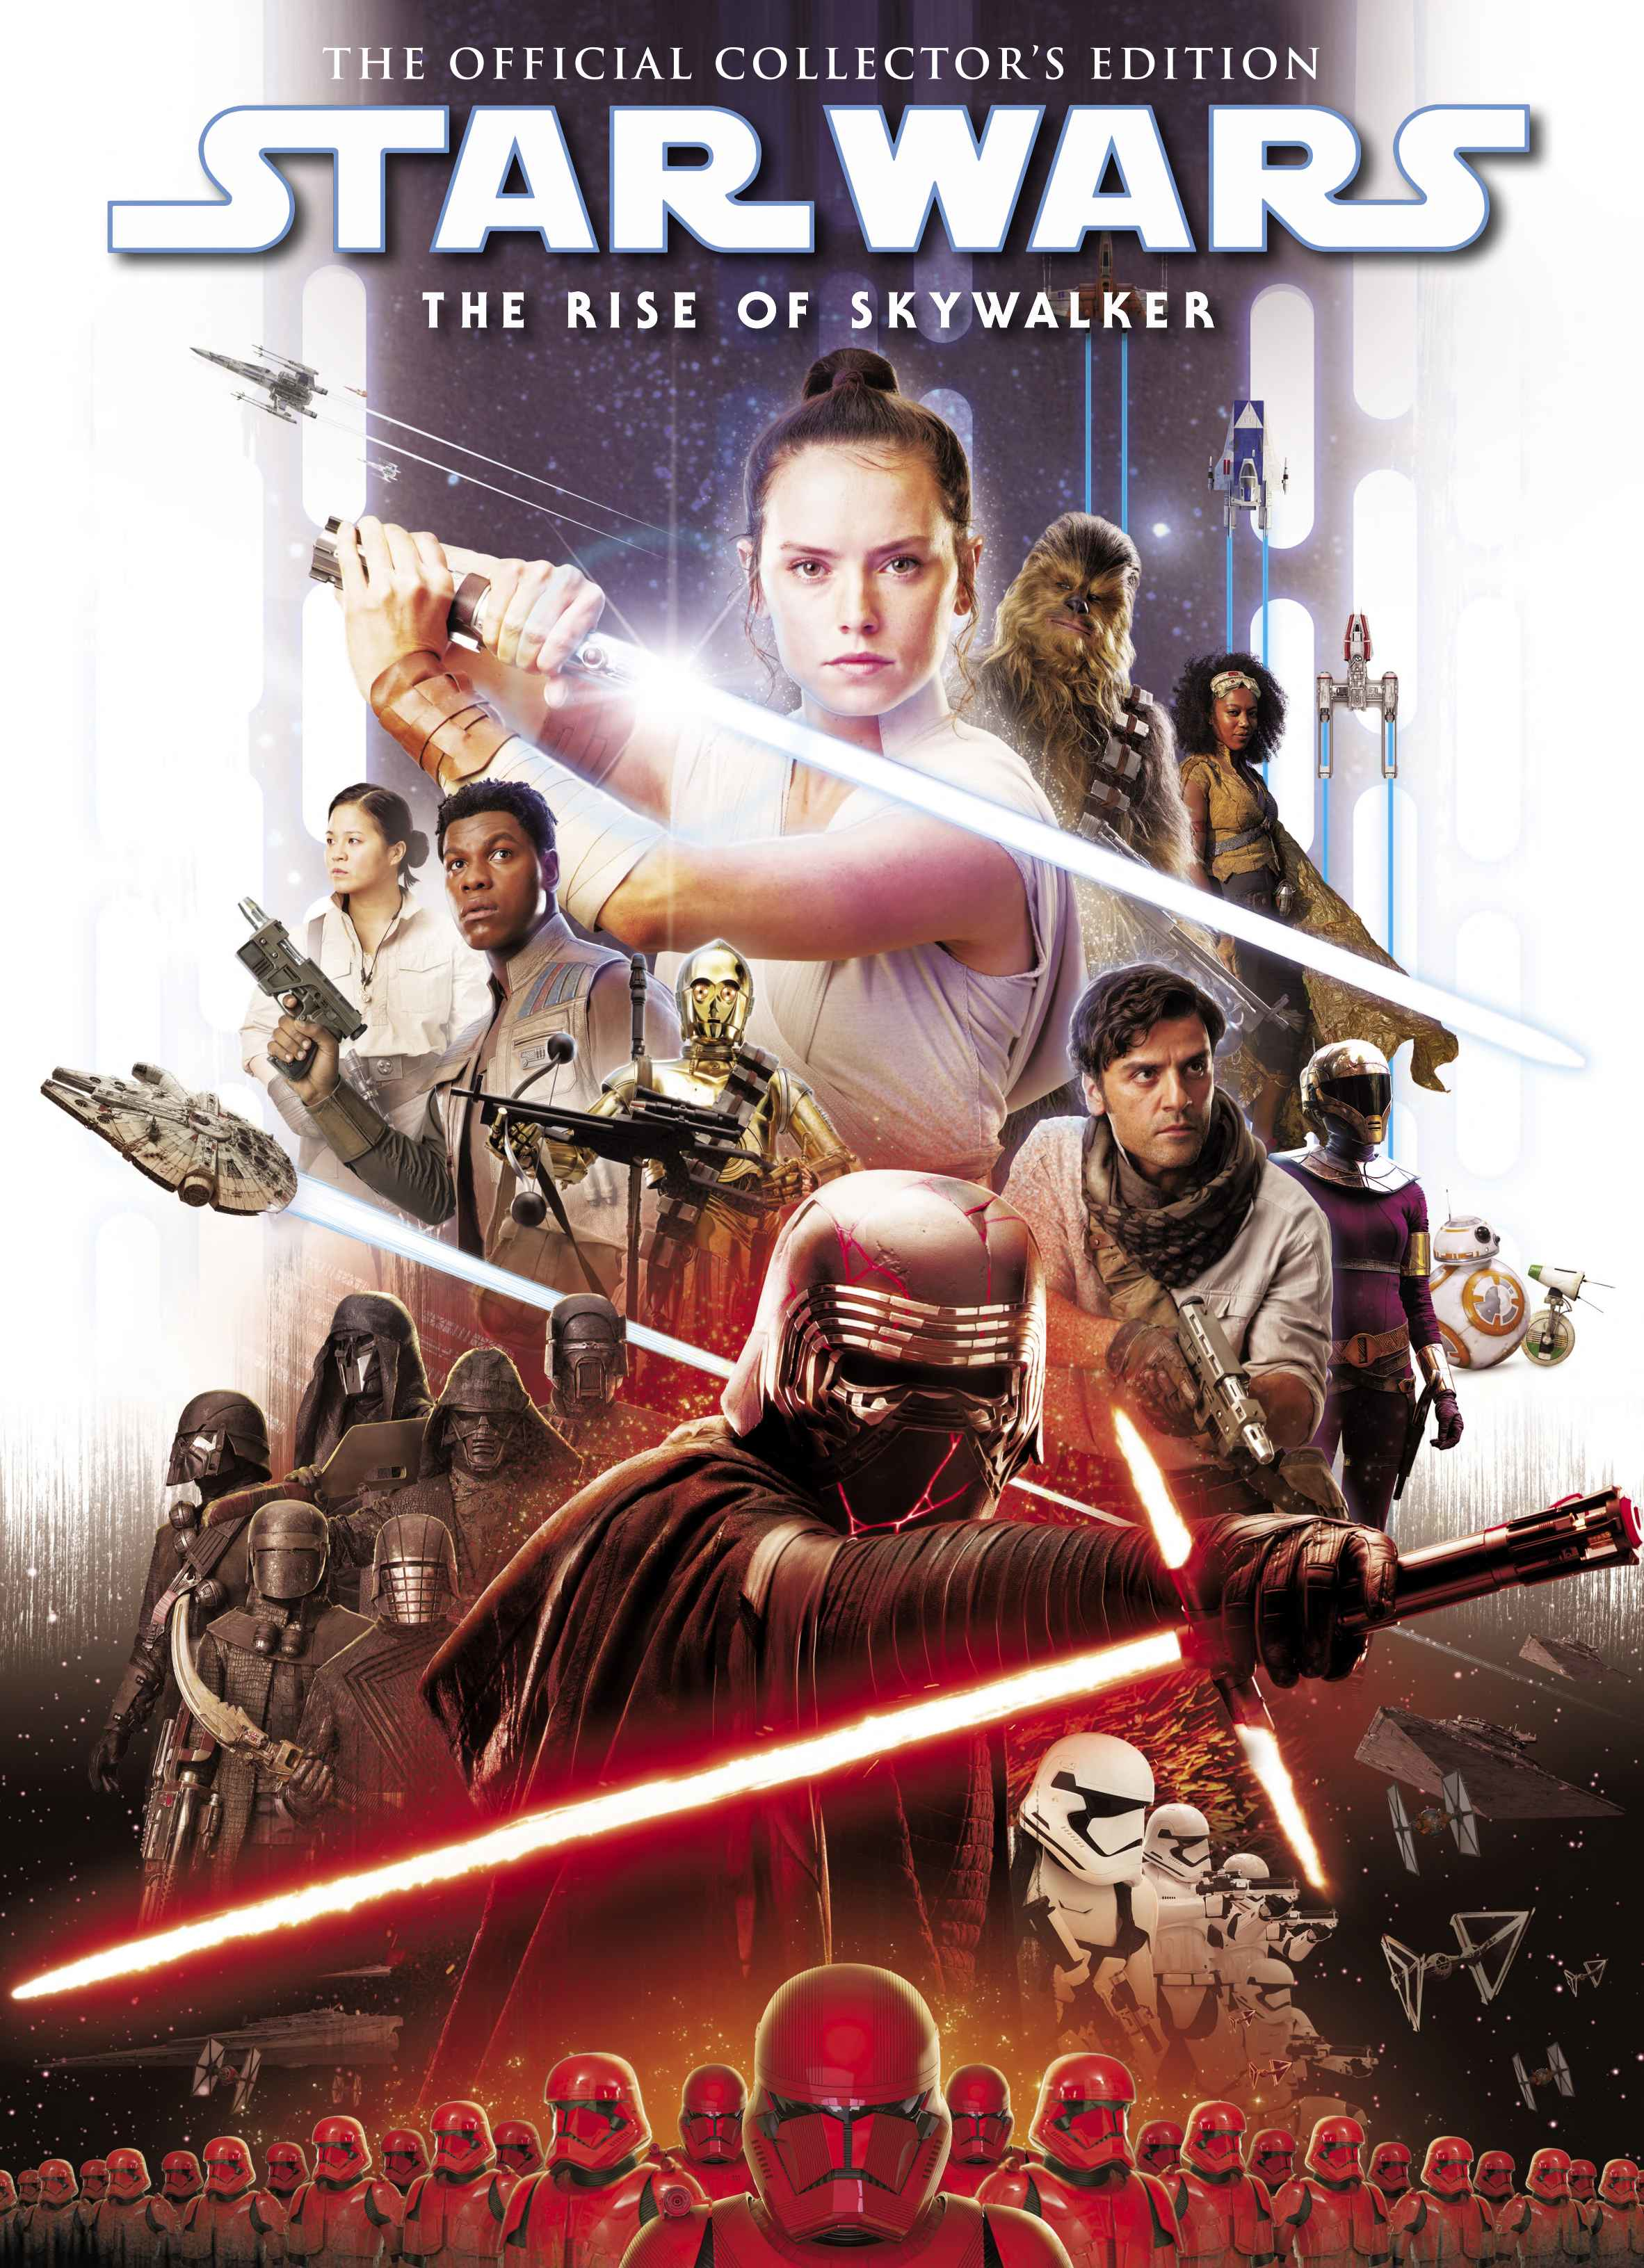 Star Wars: The Rise of Skywalker – The Official Collector's Edition